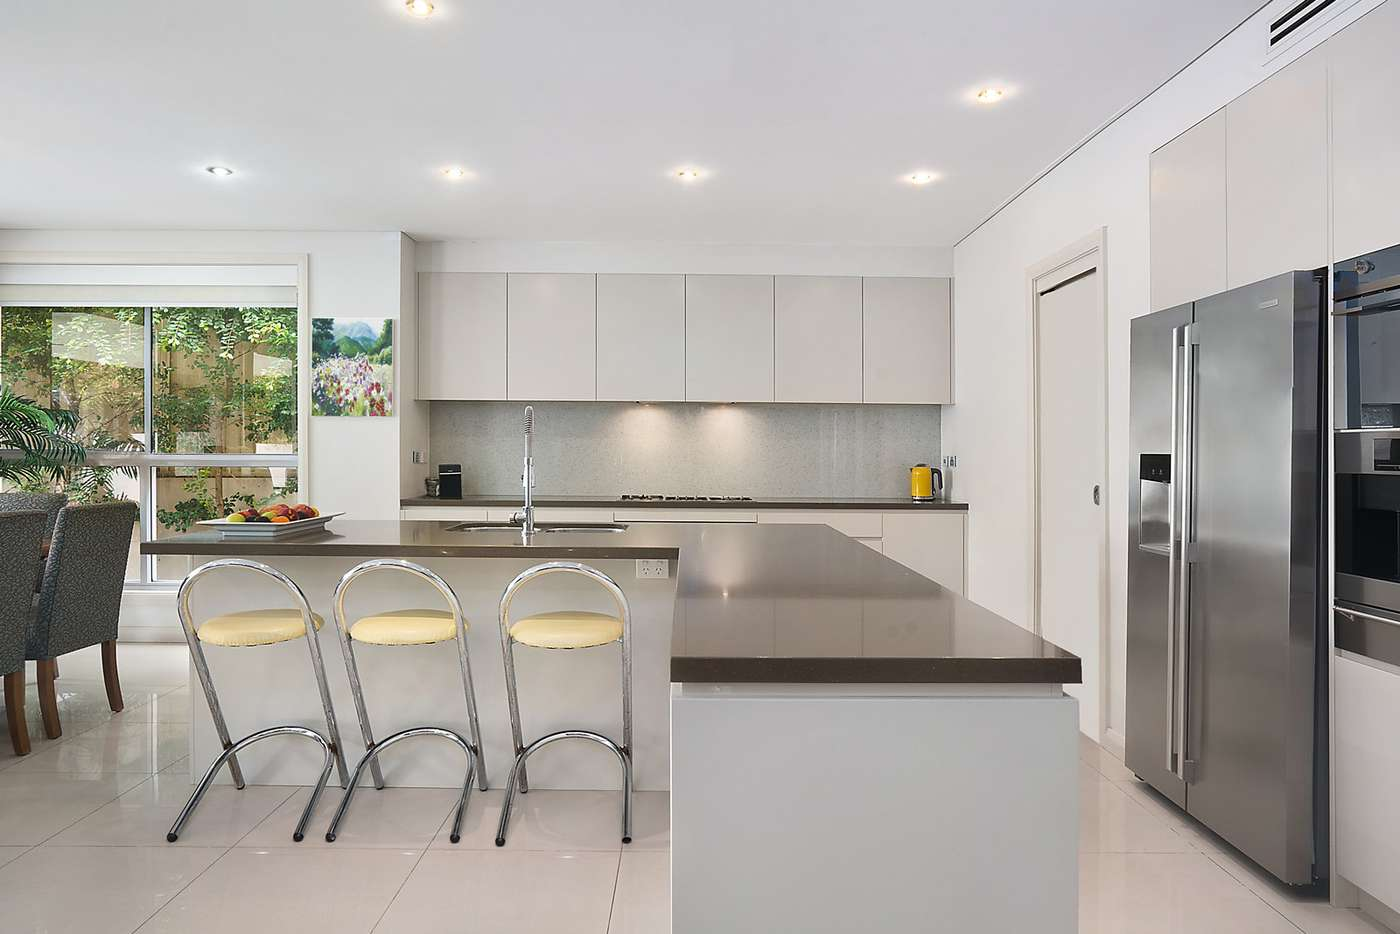 Fifth view of Homely house listing, 10 Kuppa Road, Ryde NSW 2112